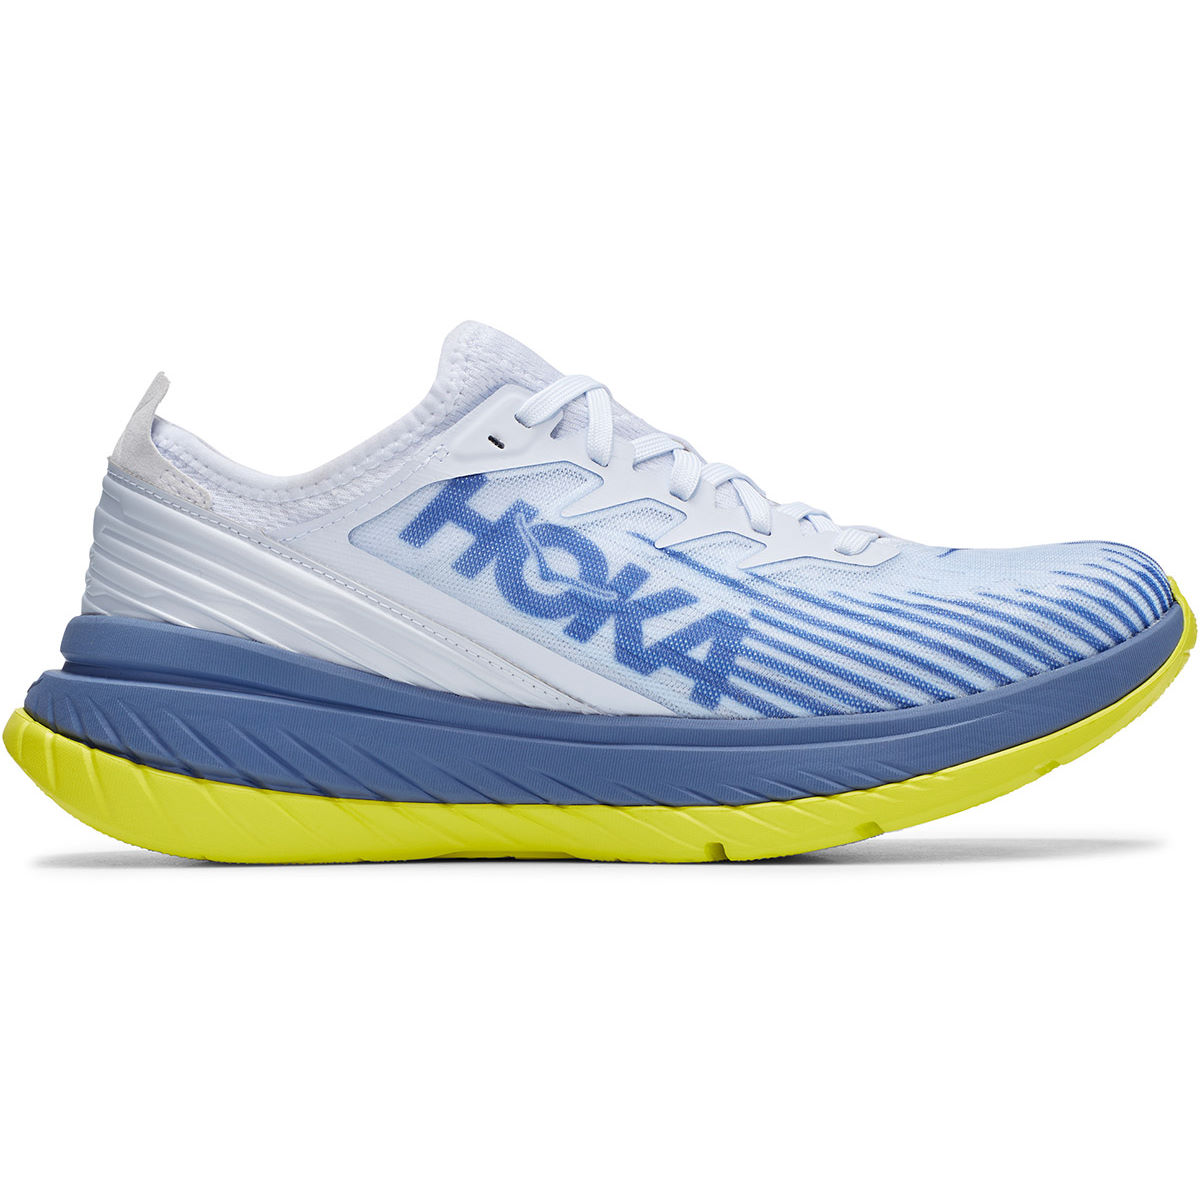 Hoka One One Hoka One One Carbon X-SPE Running Shoes   Running Shoes